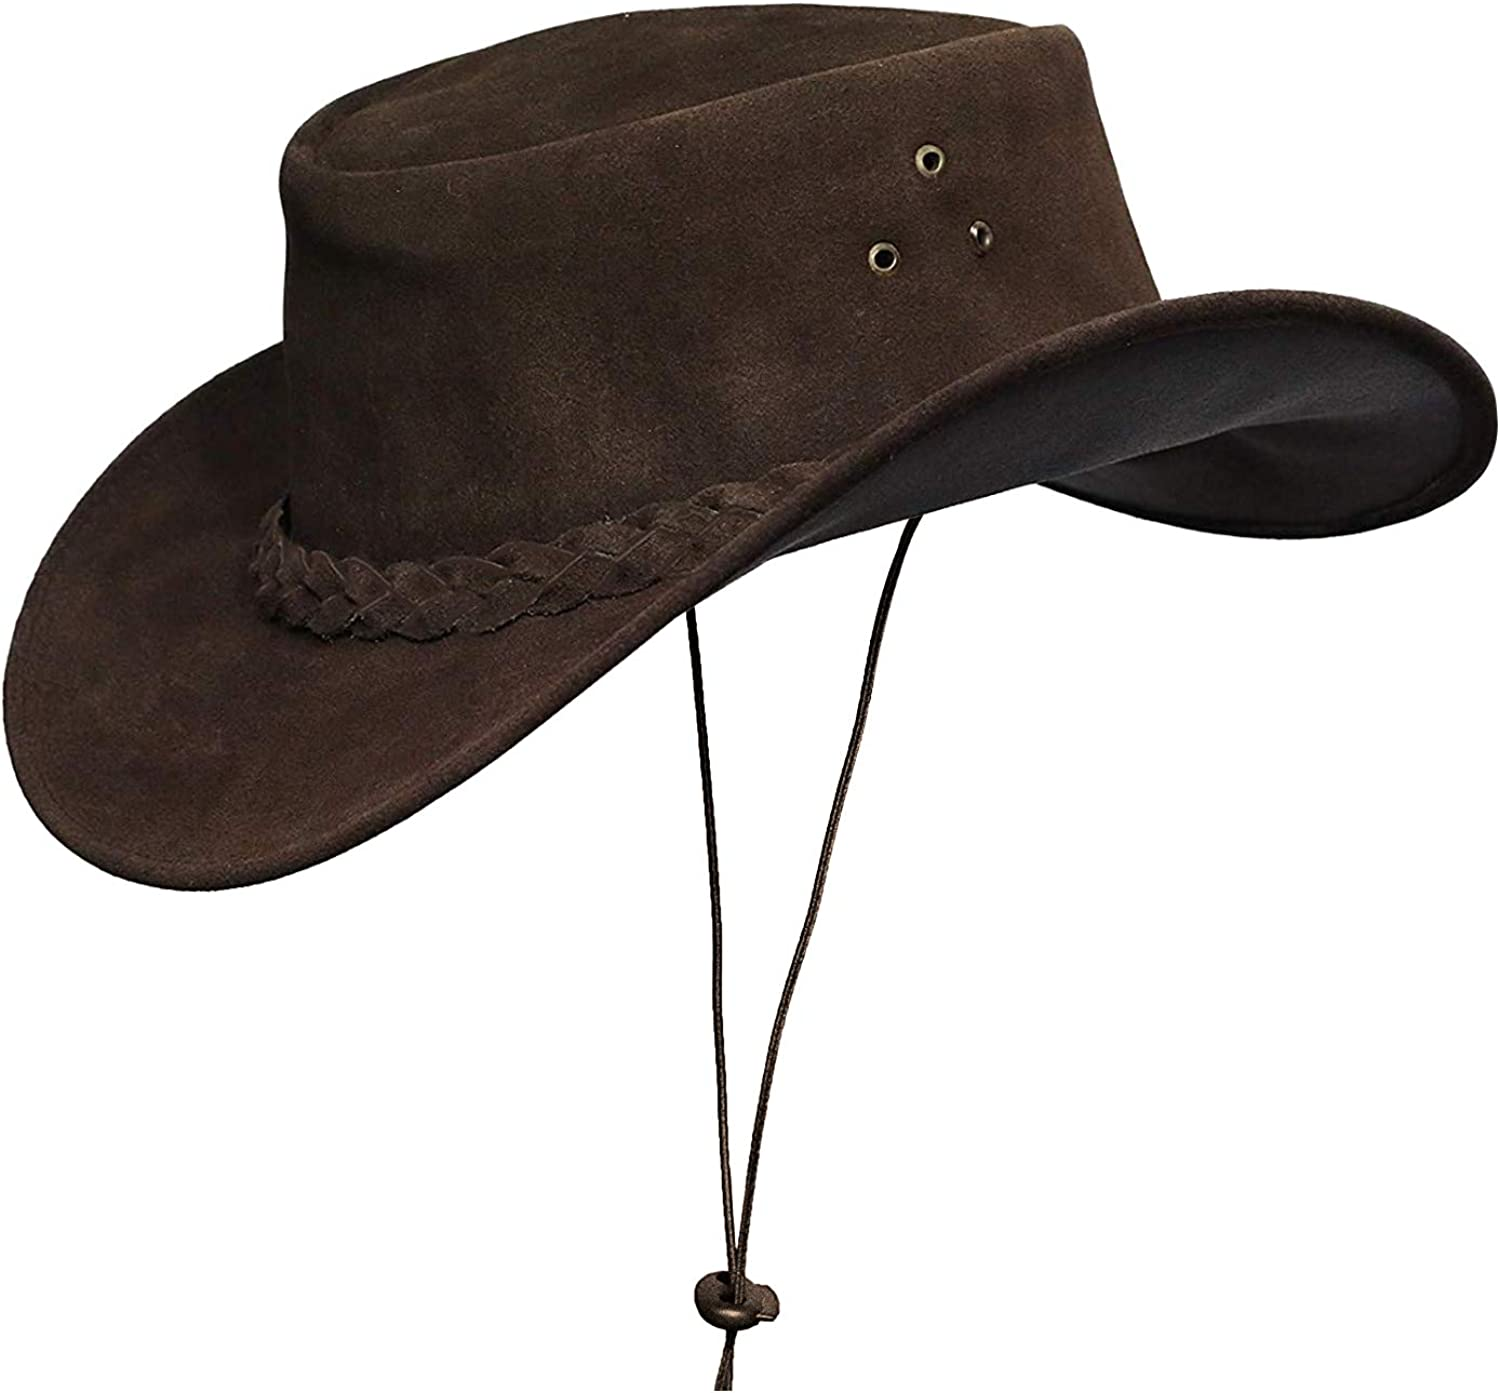 Cowboy hat for shopping Men and Cheap mail order specialty store Women Leather Outback Suede Western Outdo